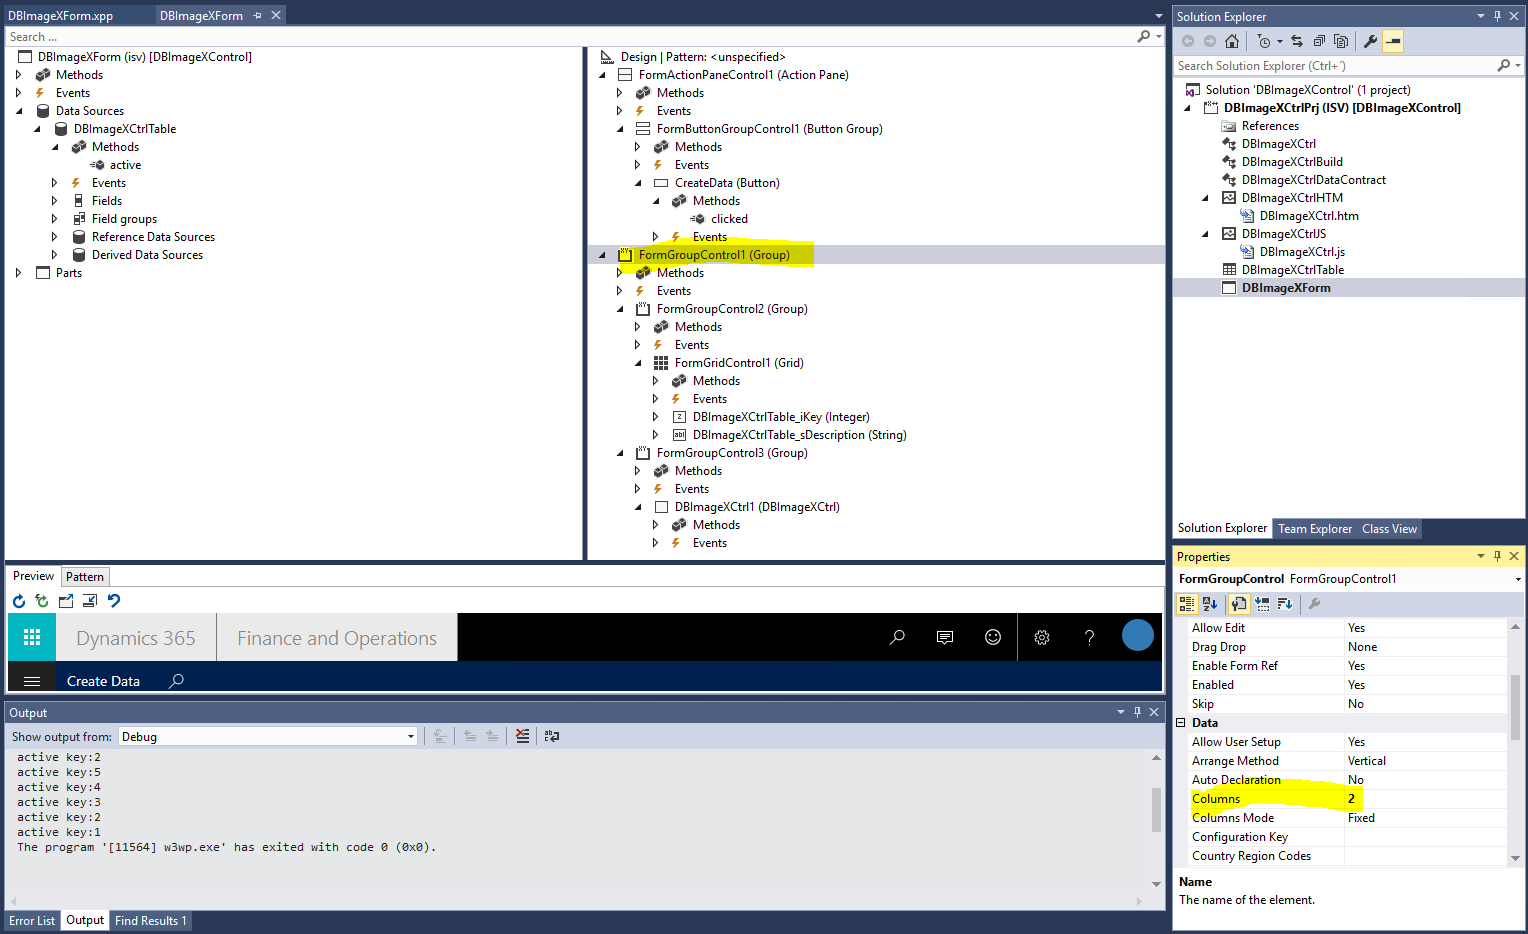 Dynamics 365 for Finance and Operations Extensible Controls